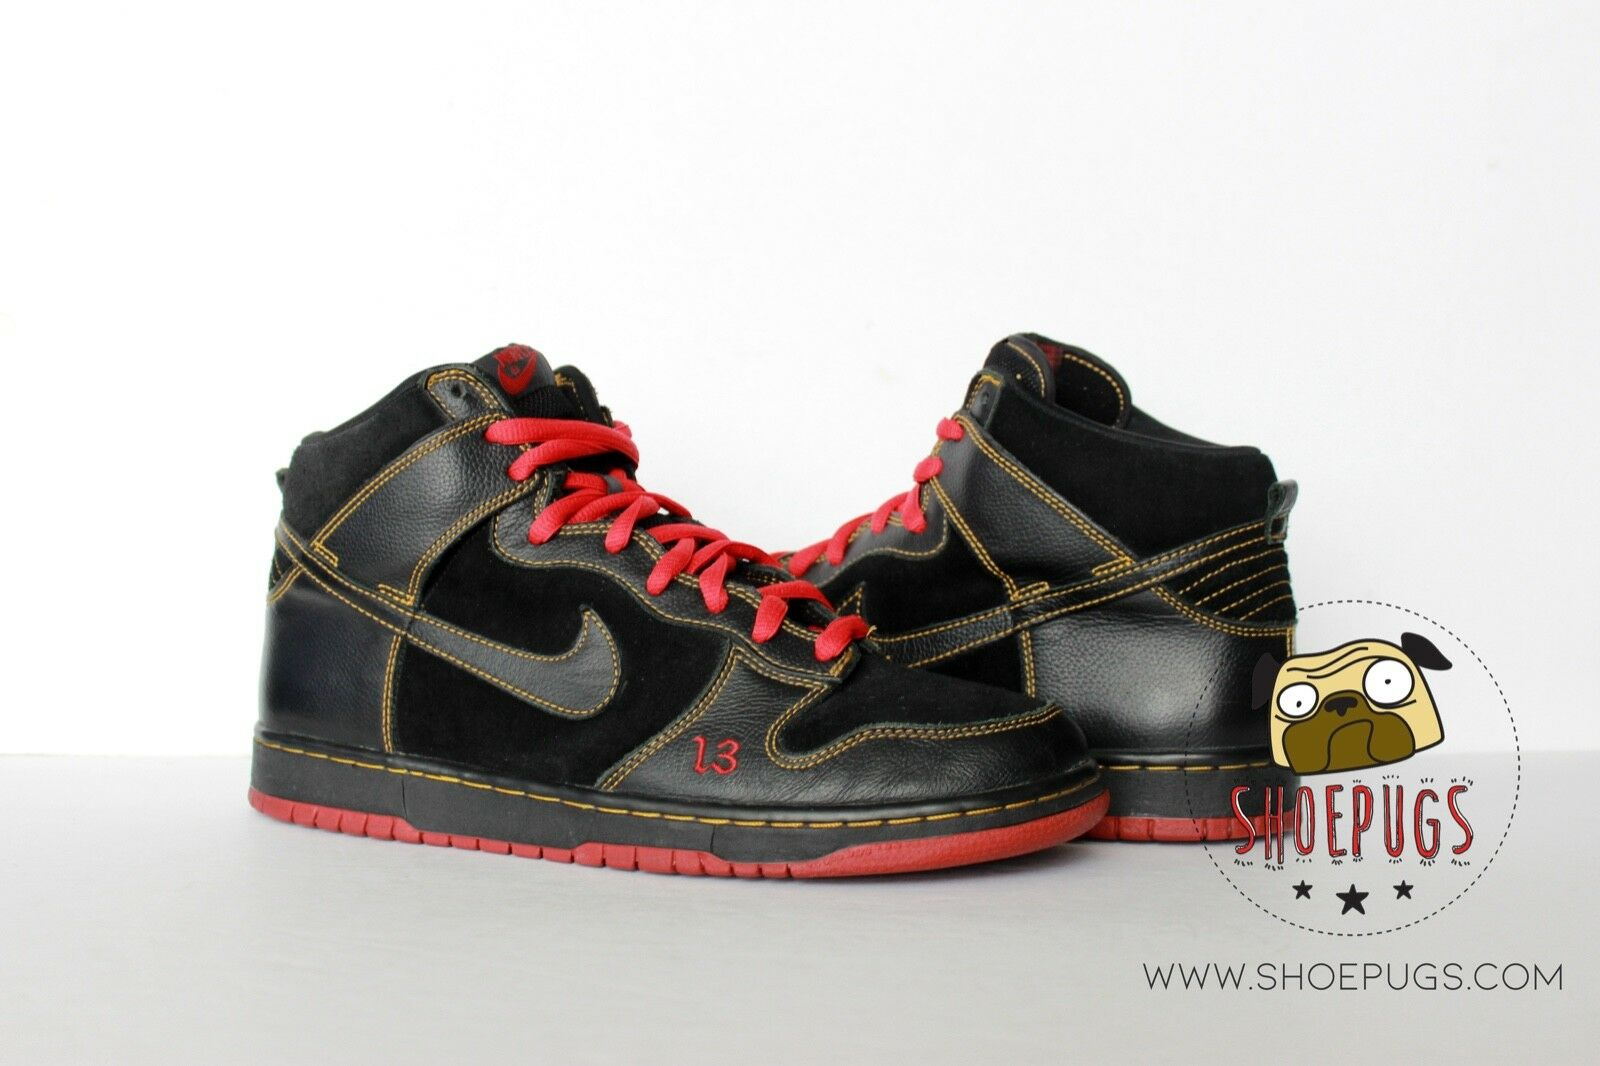 2004 Nike Dunk SB High Unlucky sz 10.5 w  Box black red supreme   TRUSTED SELLER